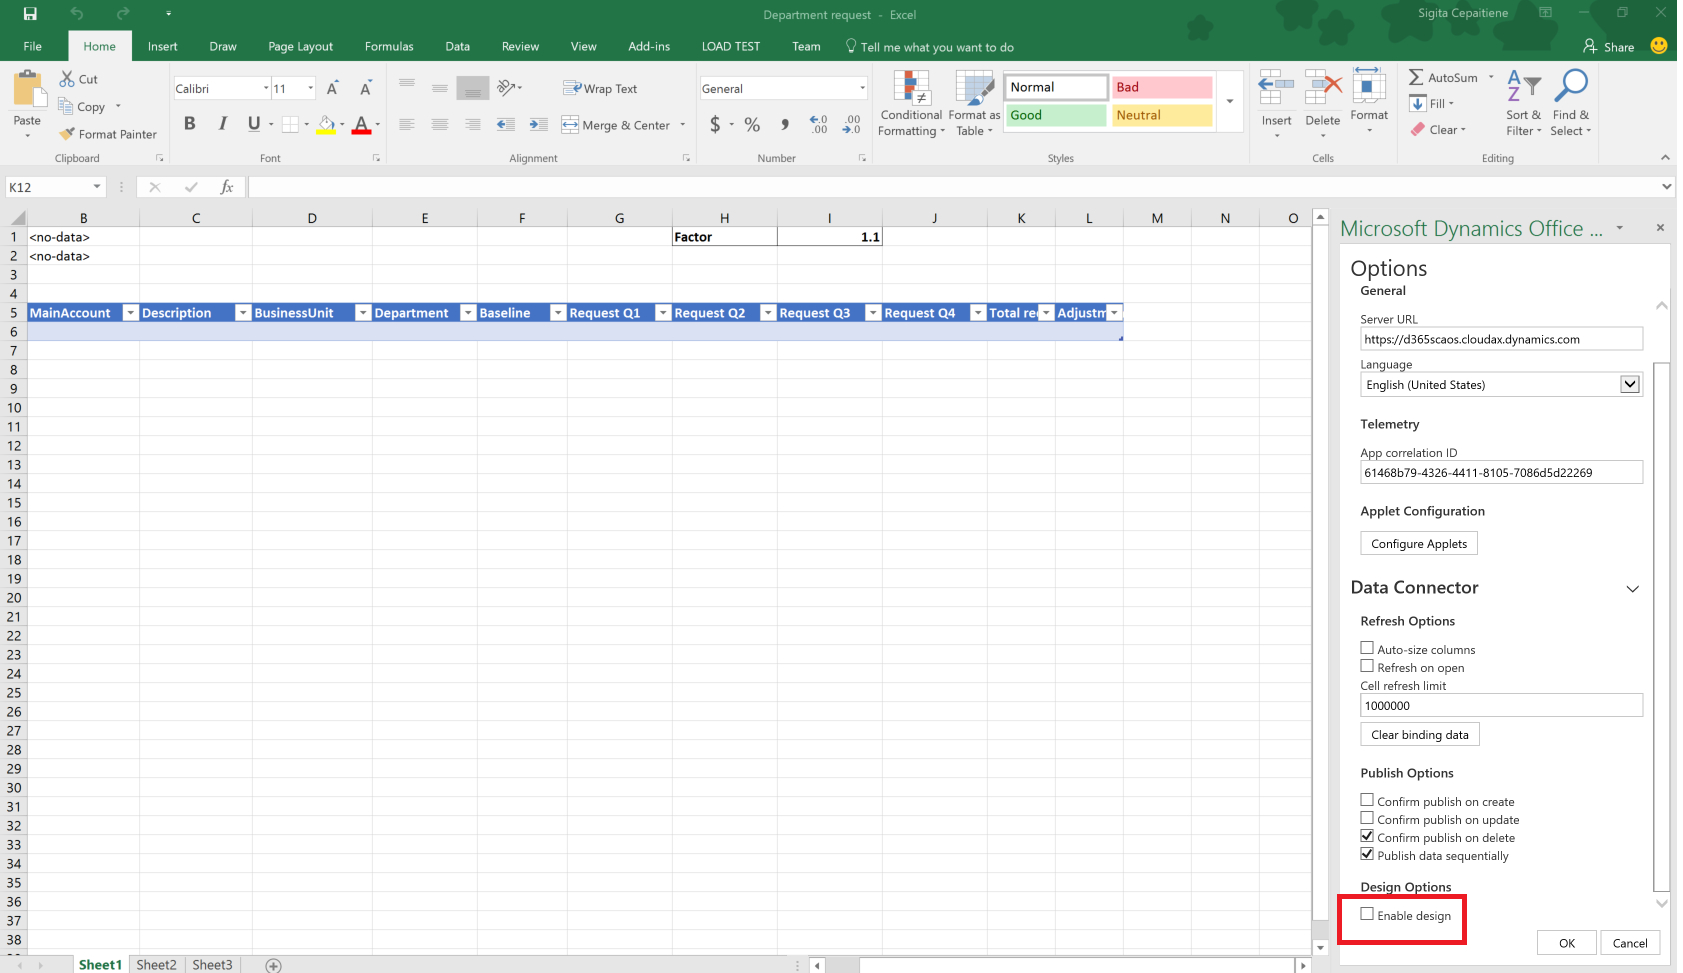 Budget Planning Templates For Excel   Finance & Operations For Excel Spreadsheets Templates